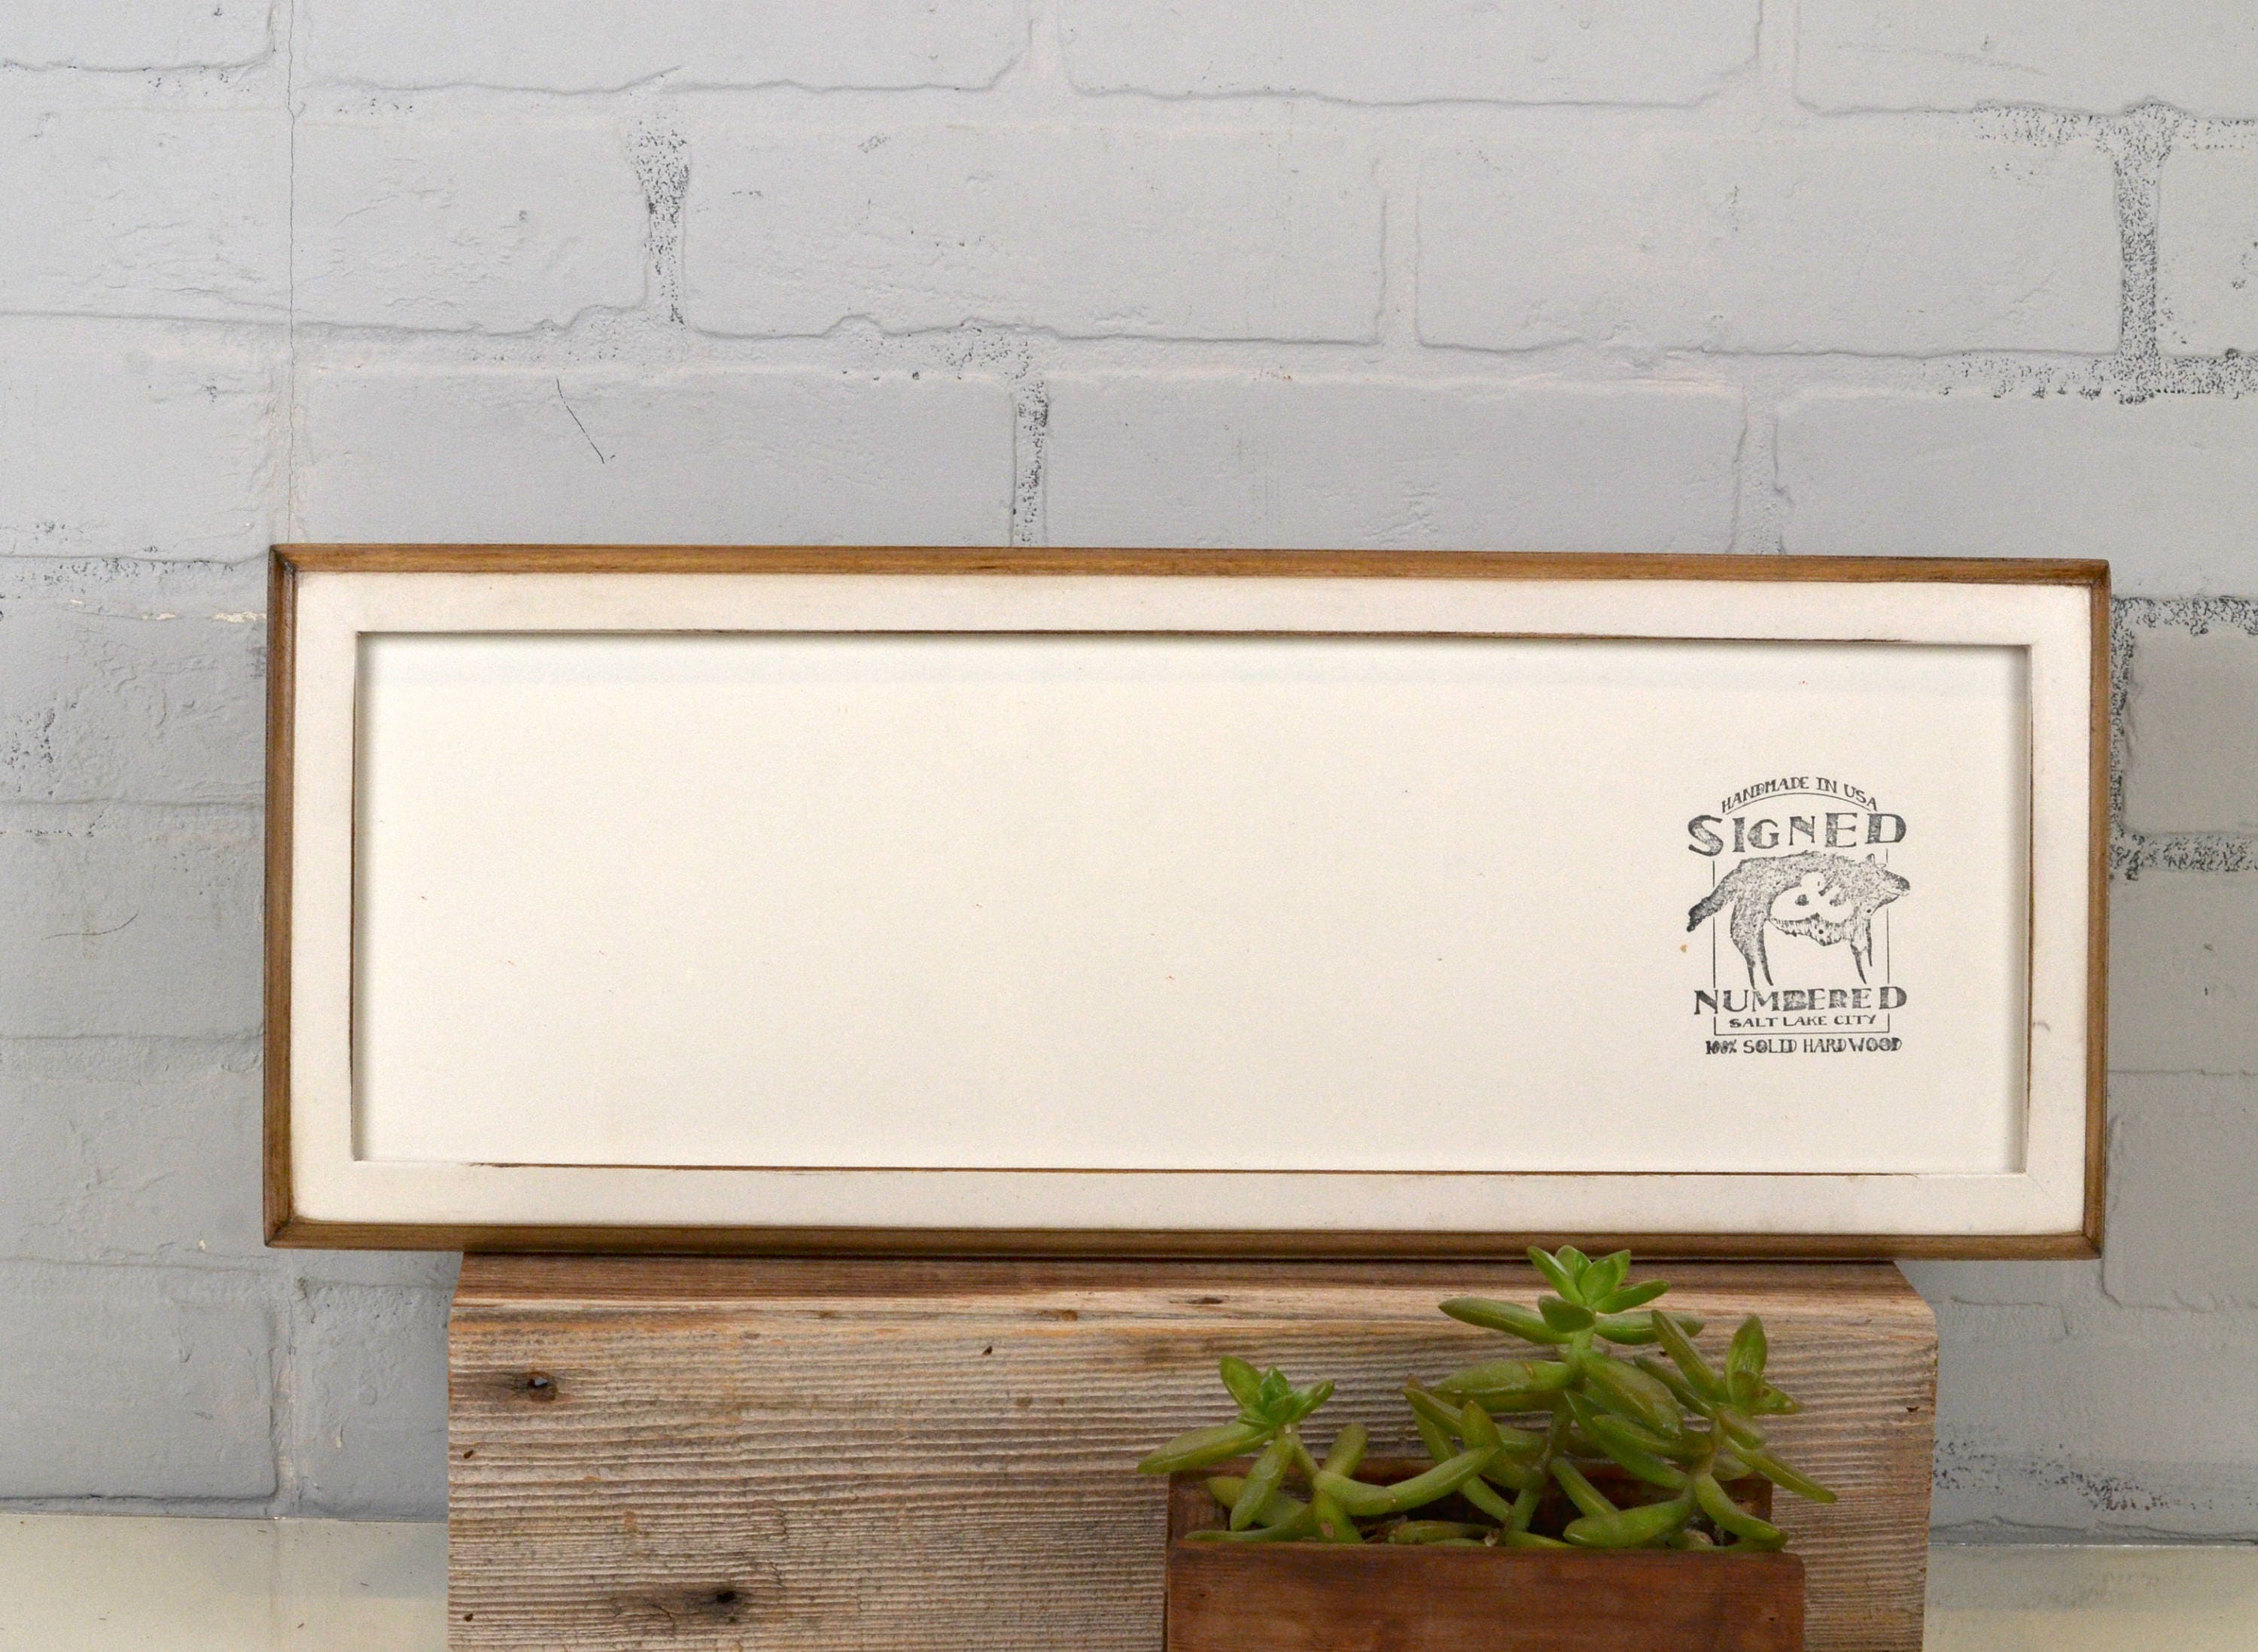 6x18 Panoramic Picture Frame 1x1 2-Tone Style with Vintage White ...